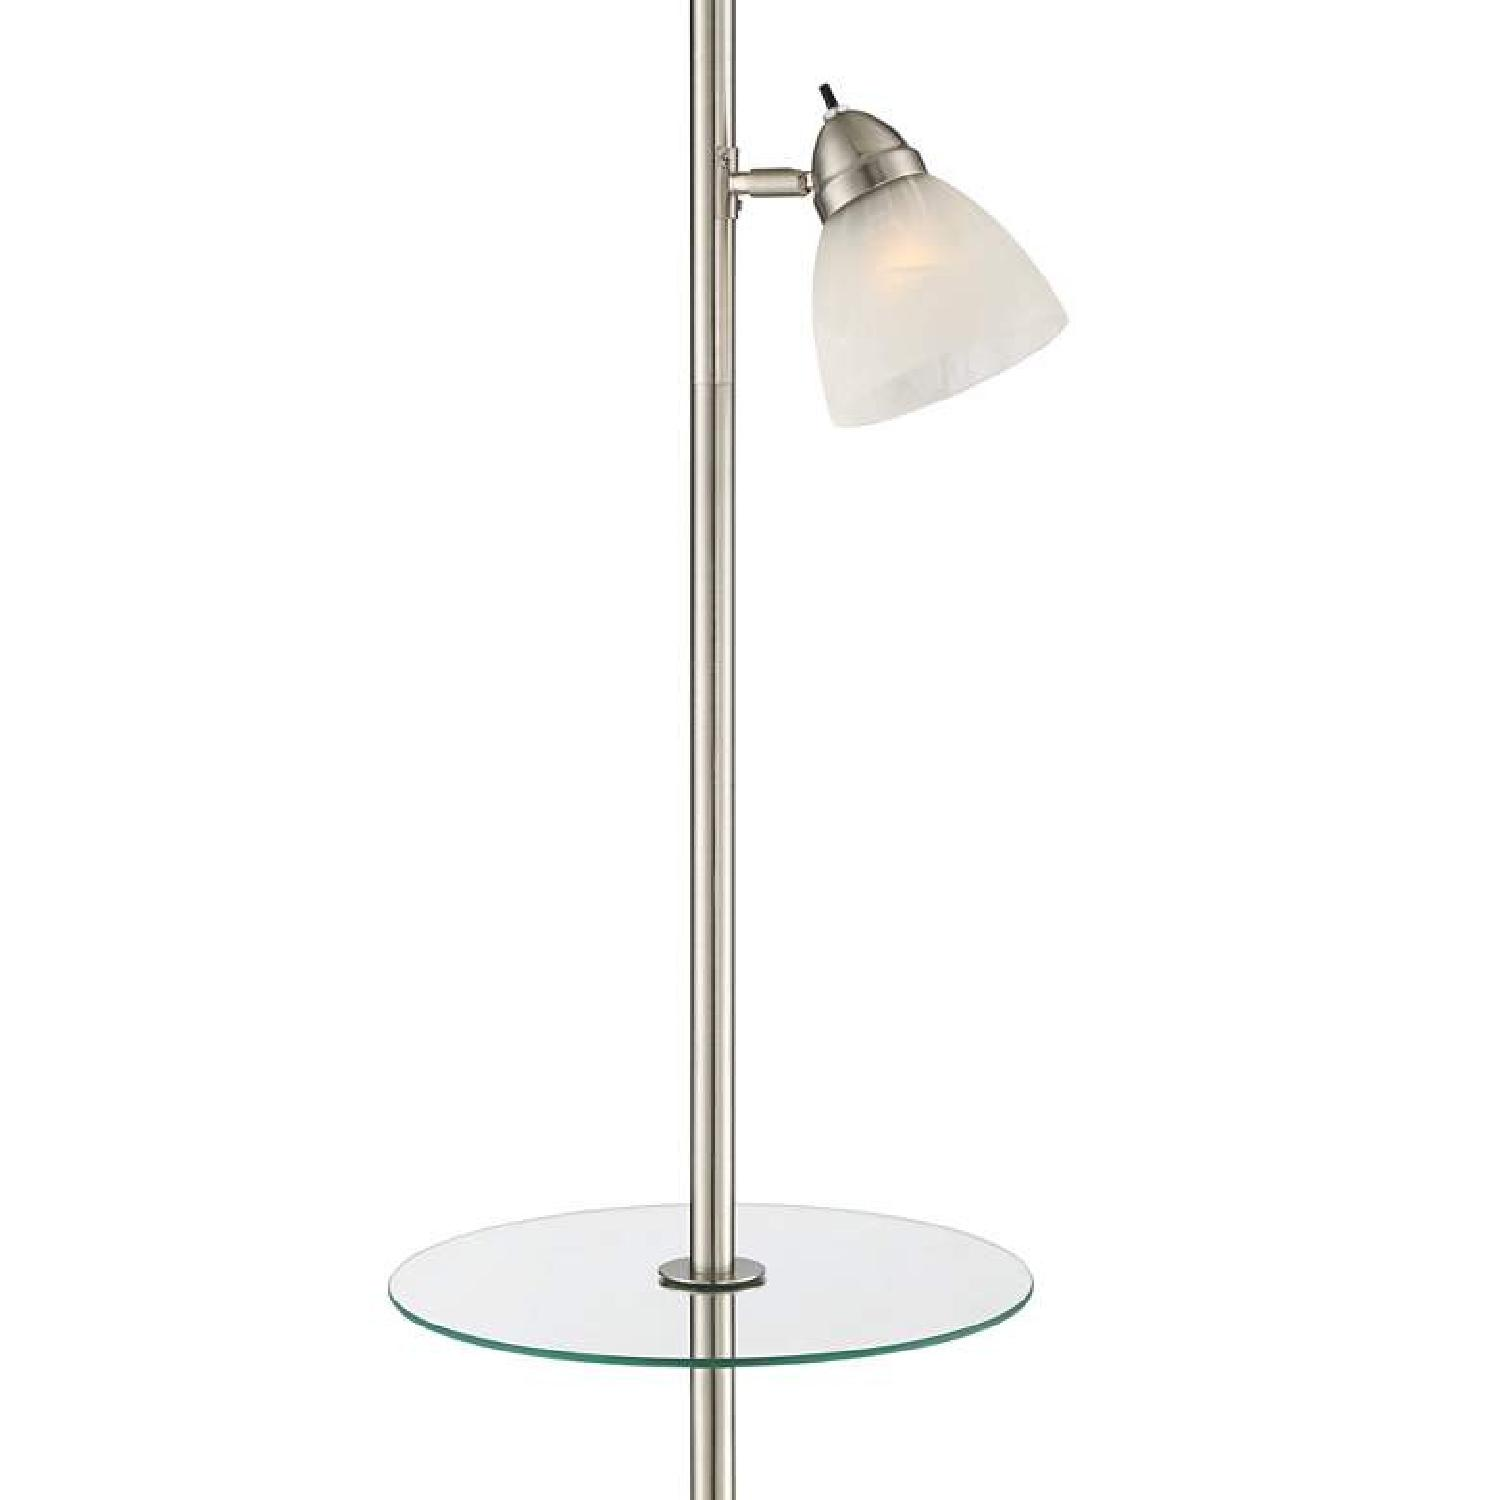 Torchiere Floor Lamp w/ Table & Reading Light - image-3